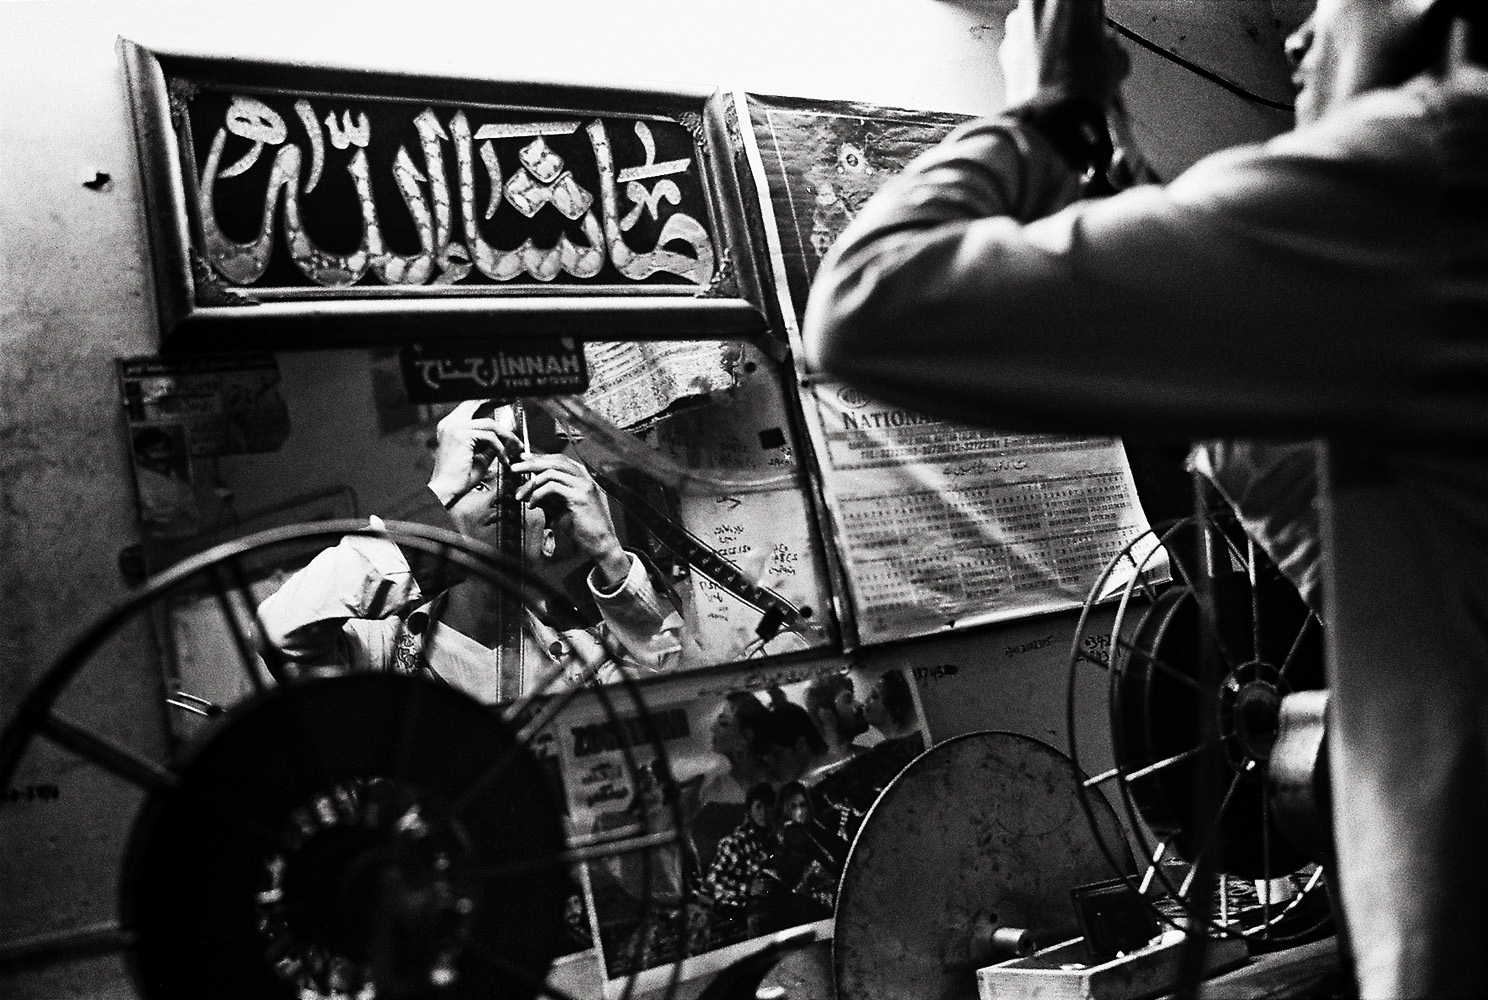 A Sindhi projectionist at Pashtun Cinema checks film before he threads it through the projector.  It's just a job. I couldn't care less about these films. They are all the same, anyway, dancing and guns.